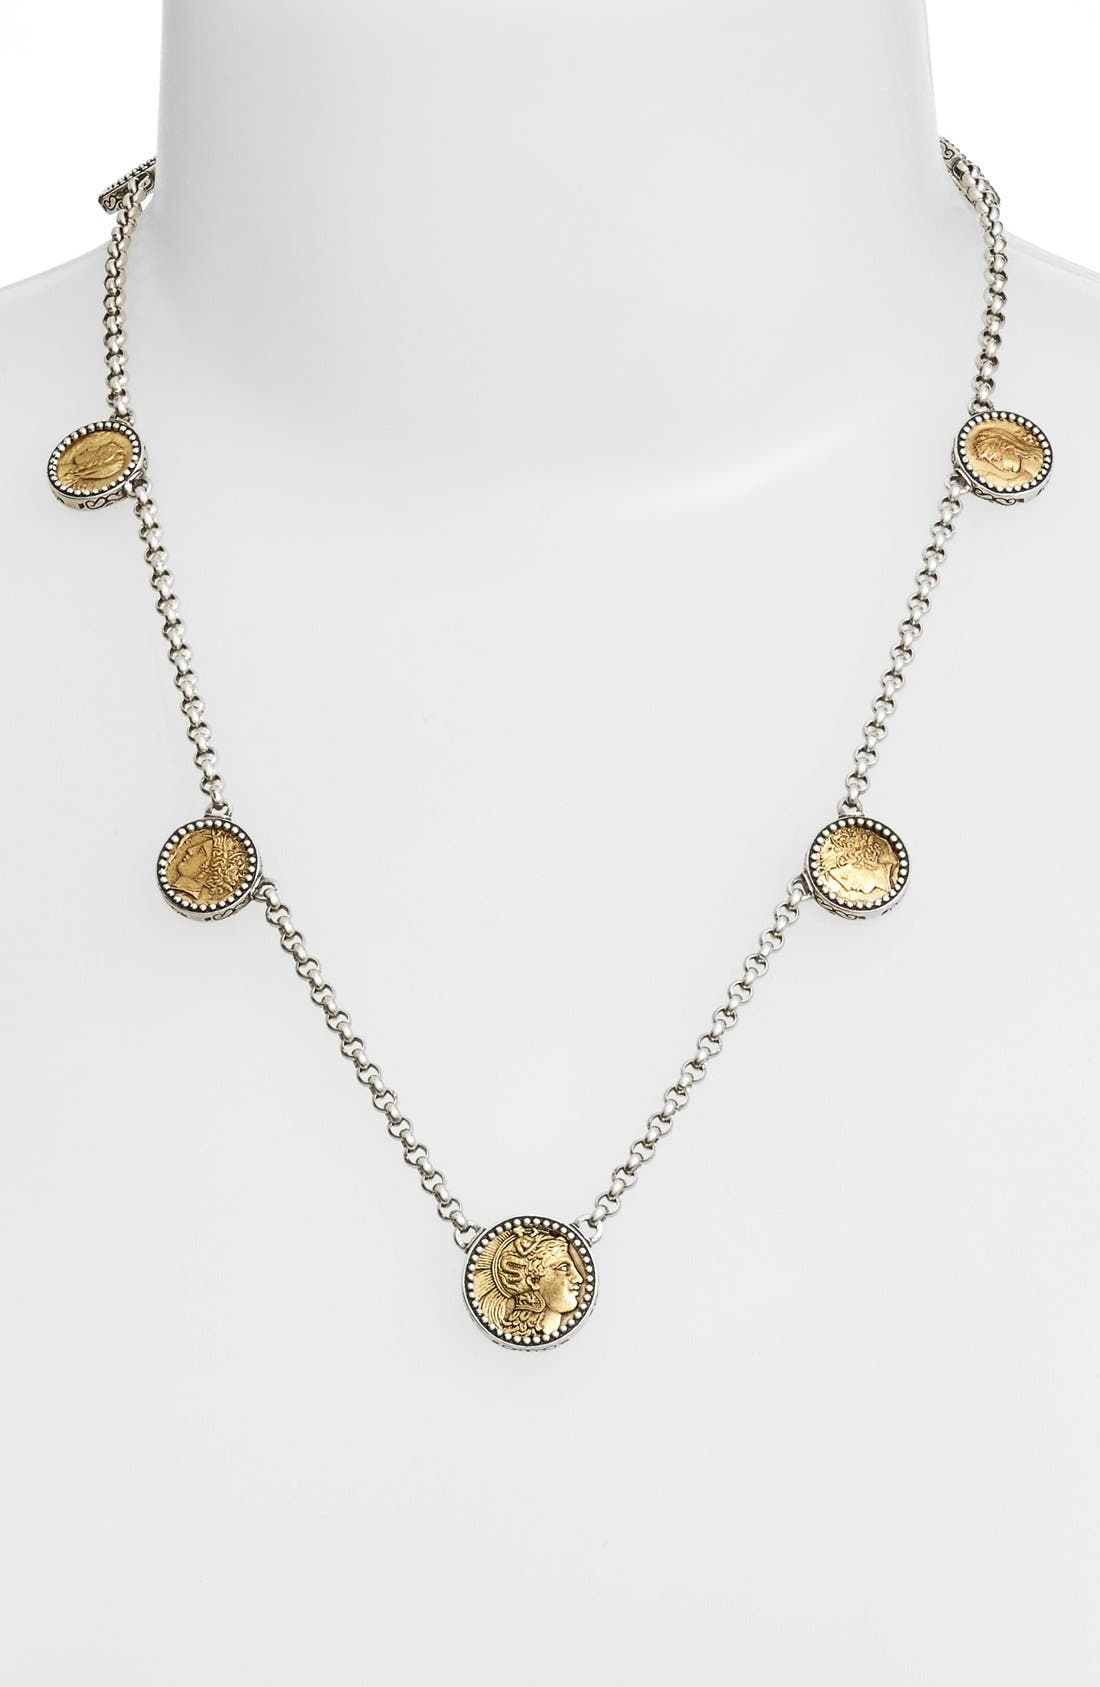 KONSTANTINO 'Goddess' Coin Necklace